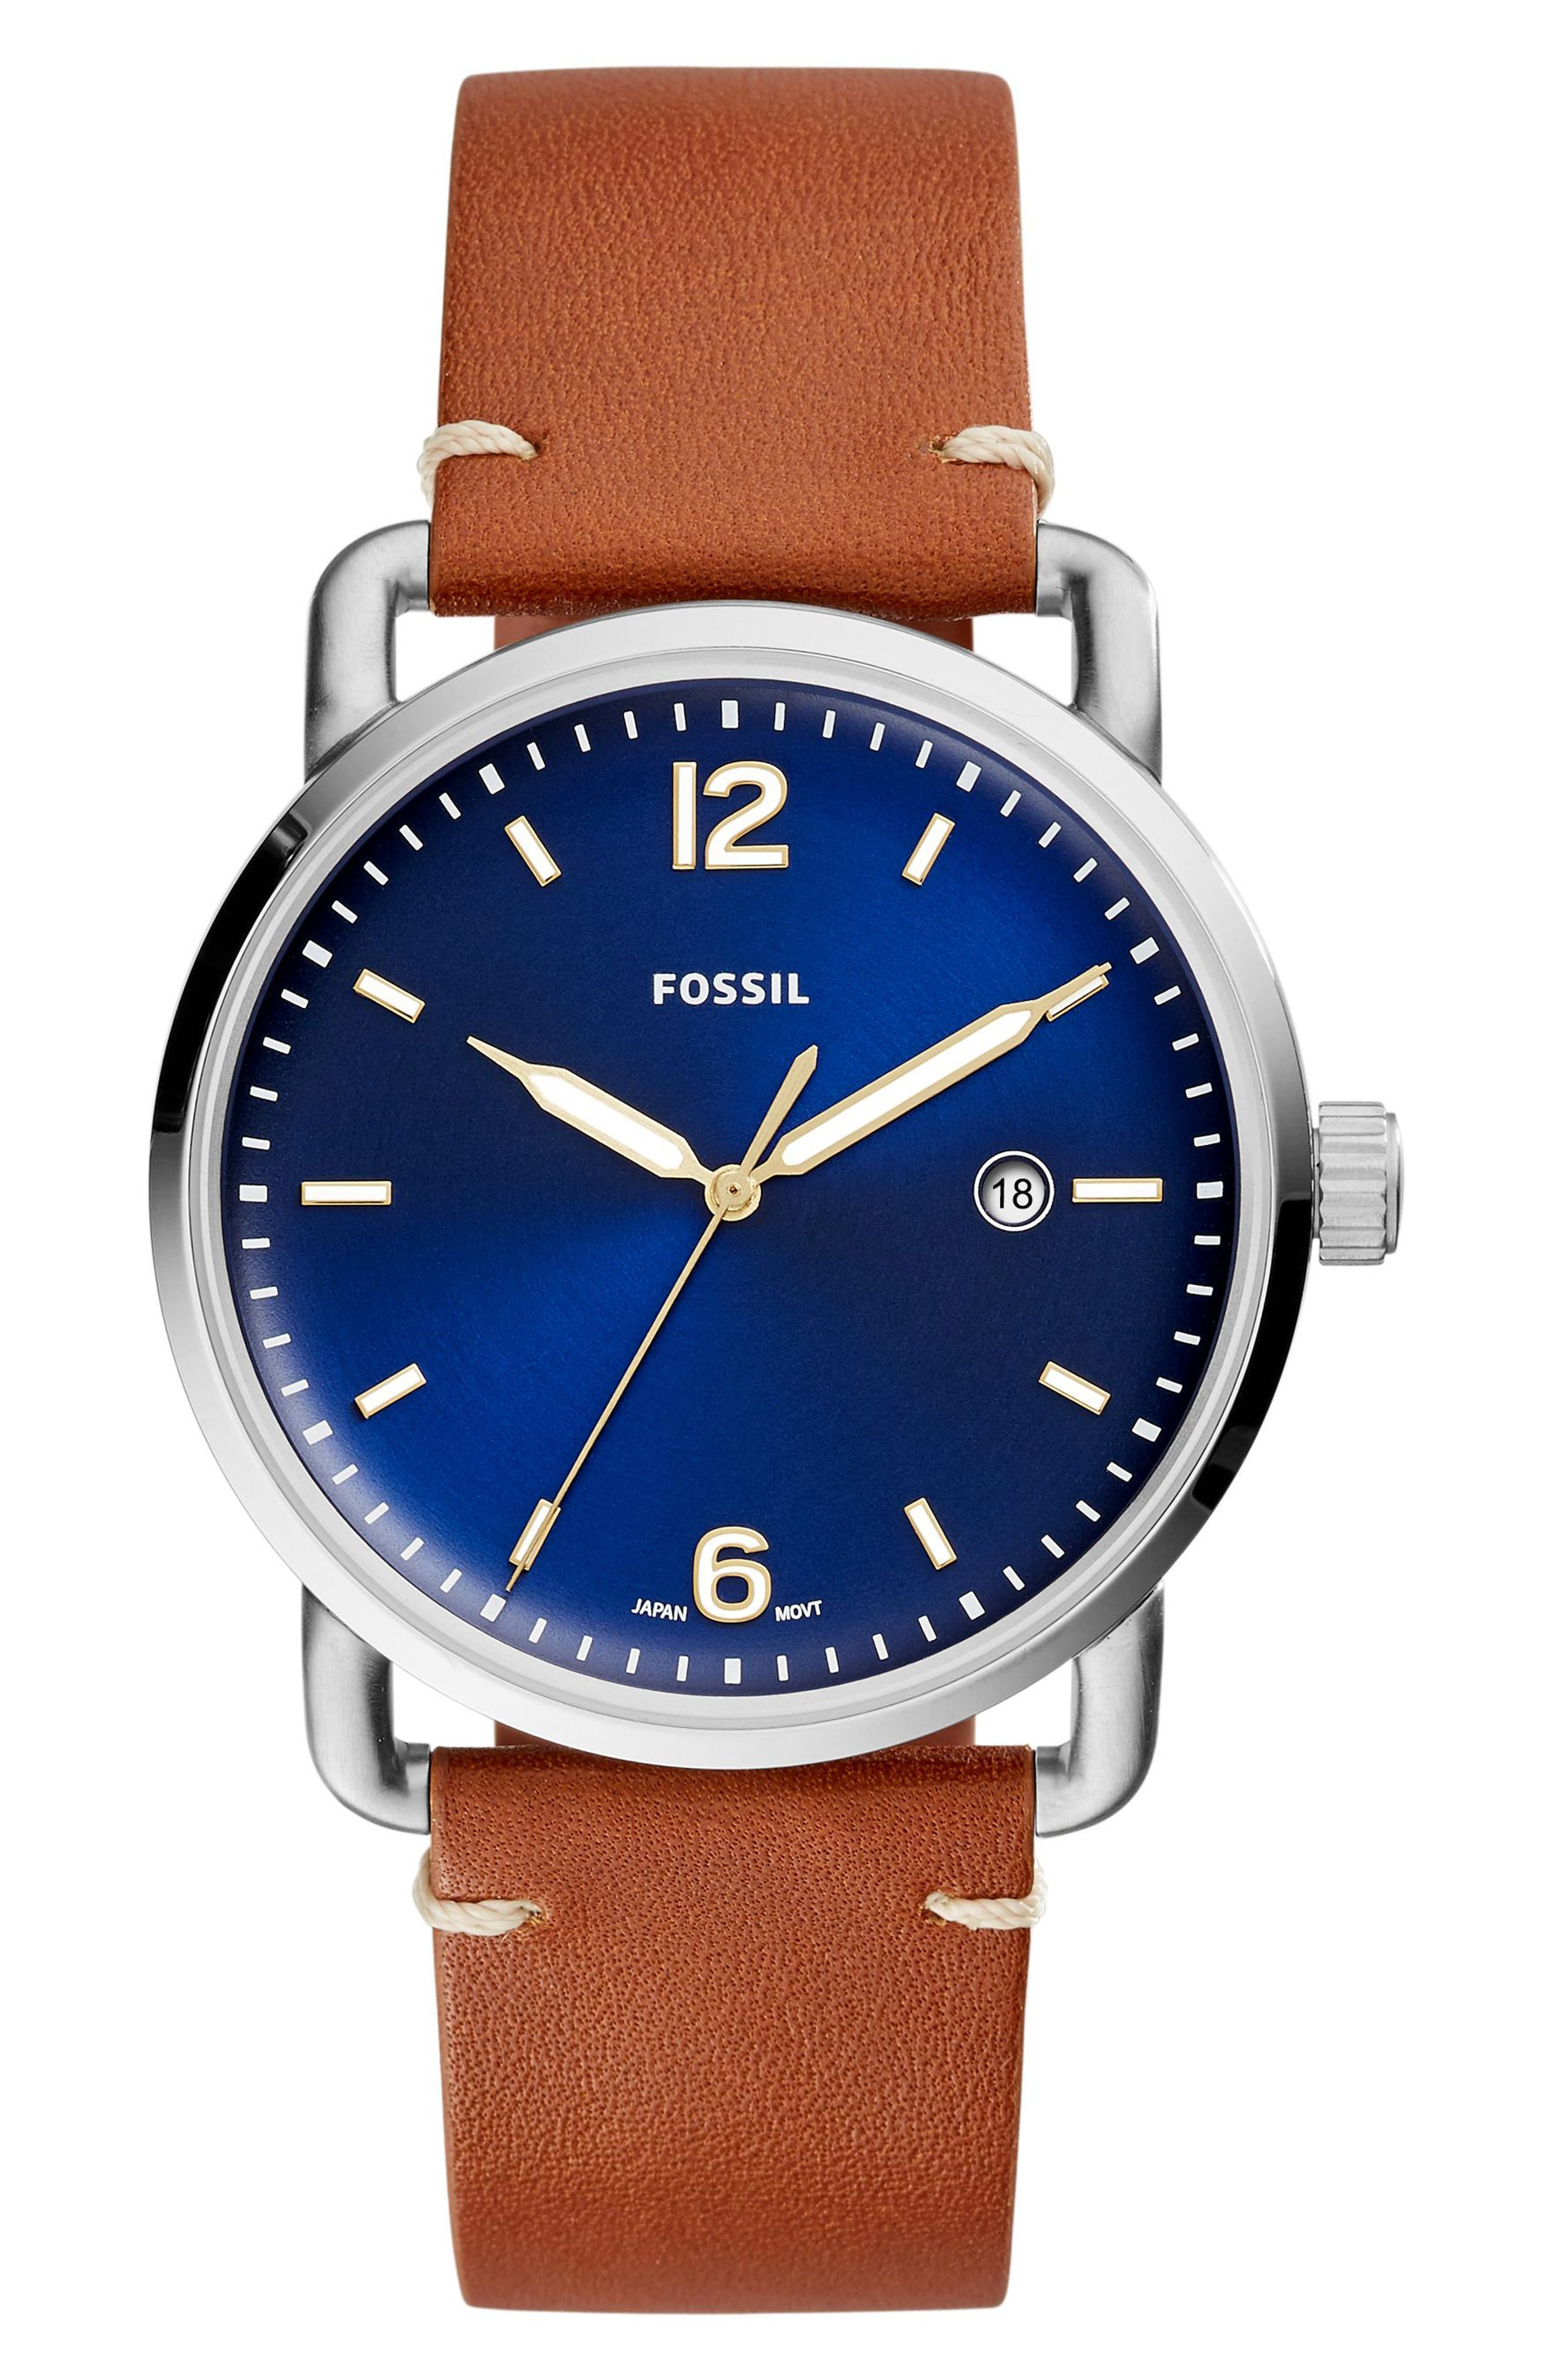 FOSSIL The Commuter Leather Strap Watch, 42mm, Main, color, BROWN/ BLUE/ SILVER